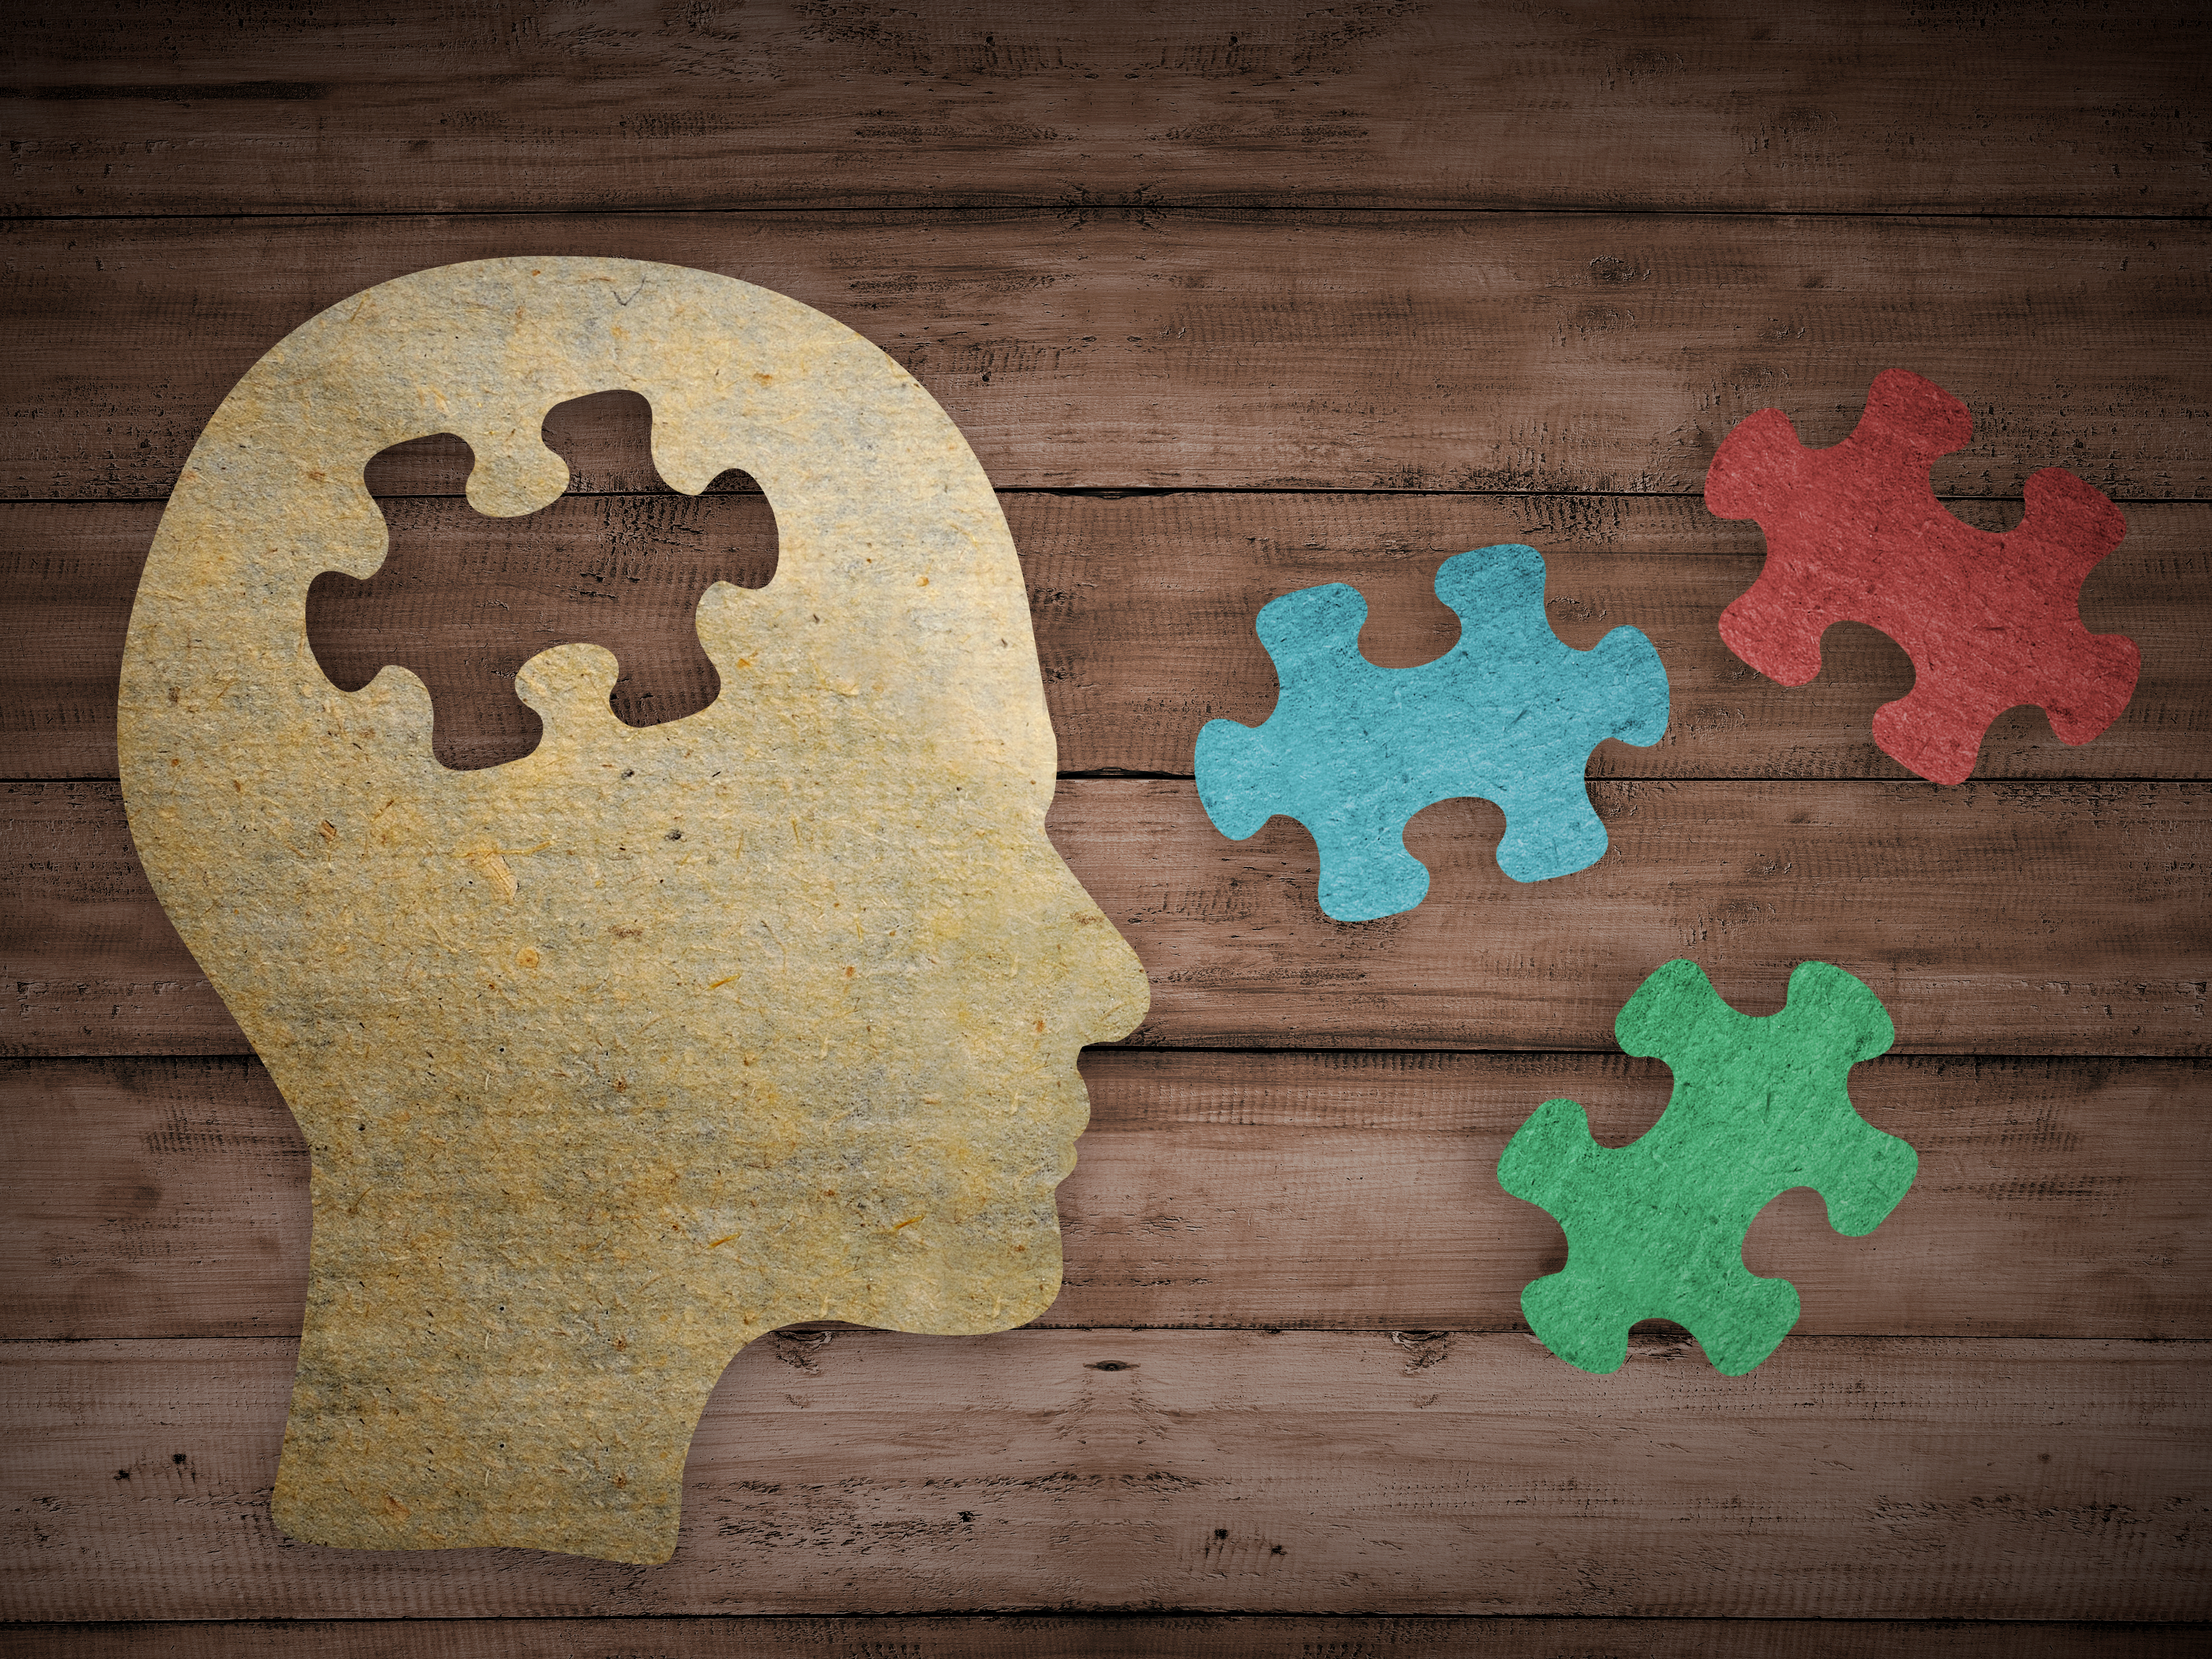 20-year study finds link between mid-life inflammation and cognitive decline in old age